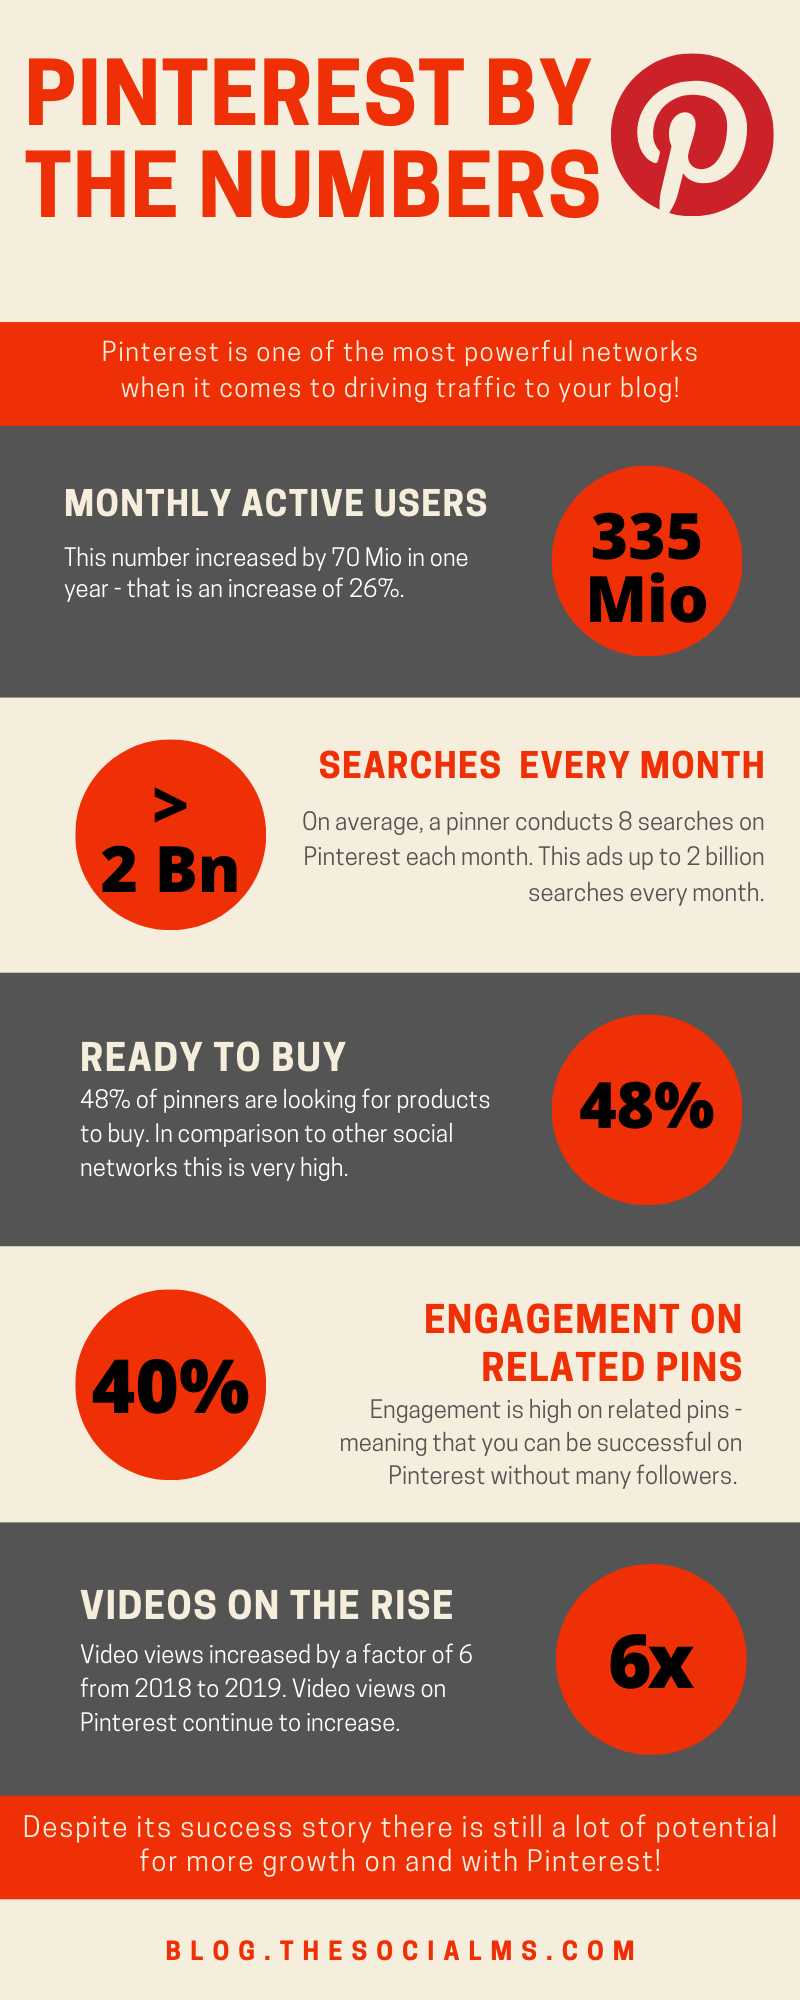 To give you the first idea why Pinterest should be on your radar for marketing, no matter whether you are growing a new blog or running a small business, I collected some numbers and facts about Pinterest for you. #pinterest #pinterestmarketing #pinterestfacts #pinteresttips #pintereststatistics #socialmediatips #socialmediafacts